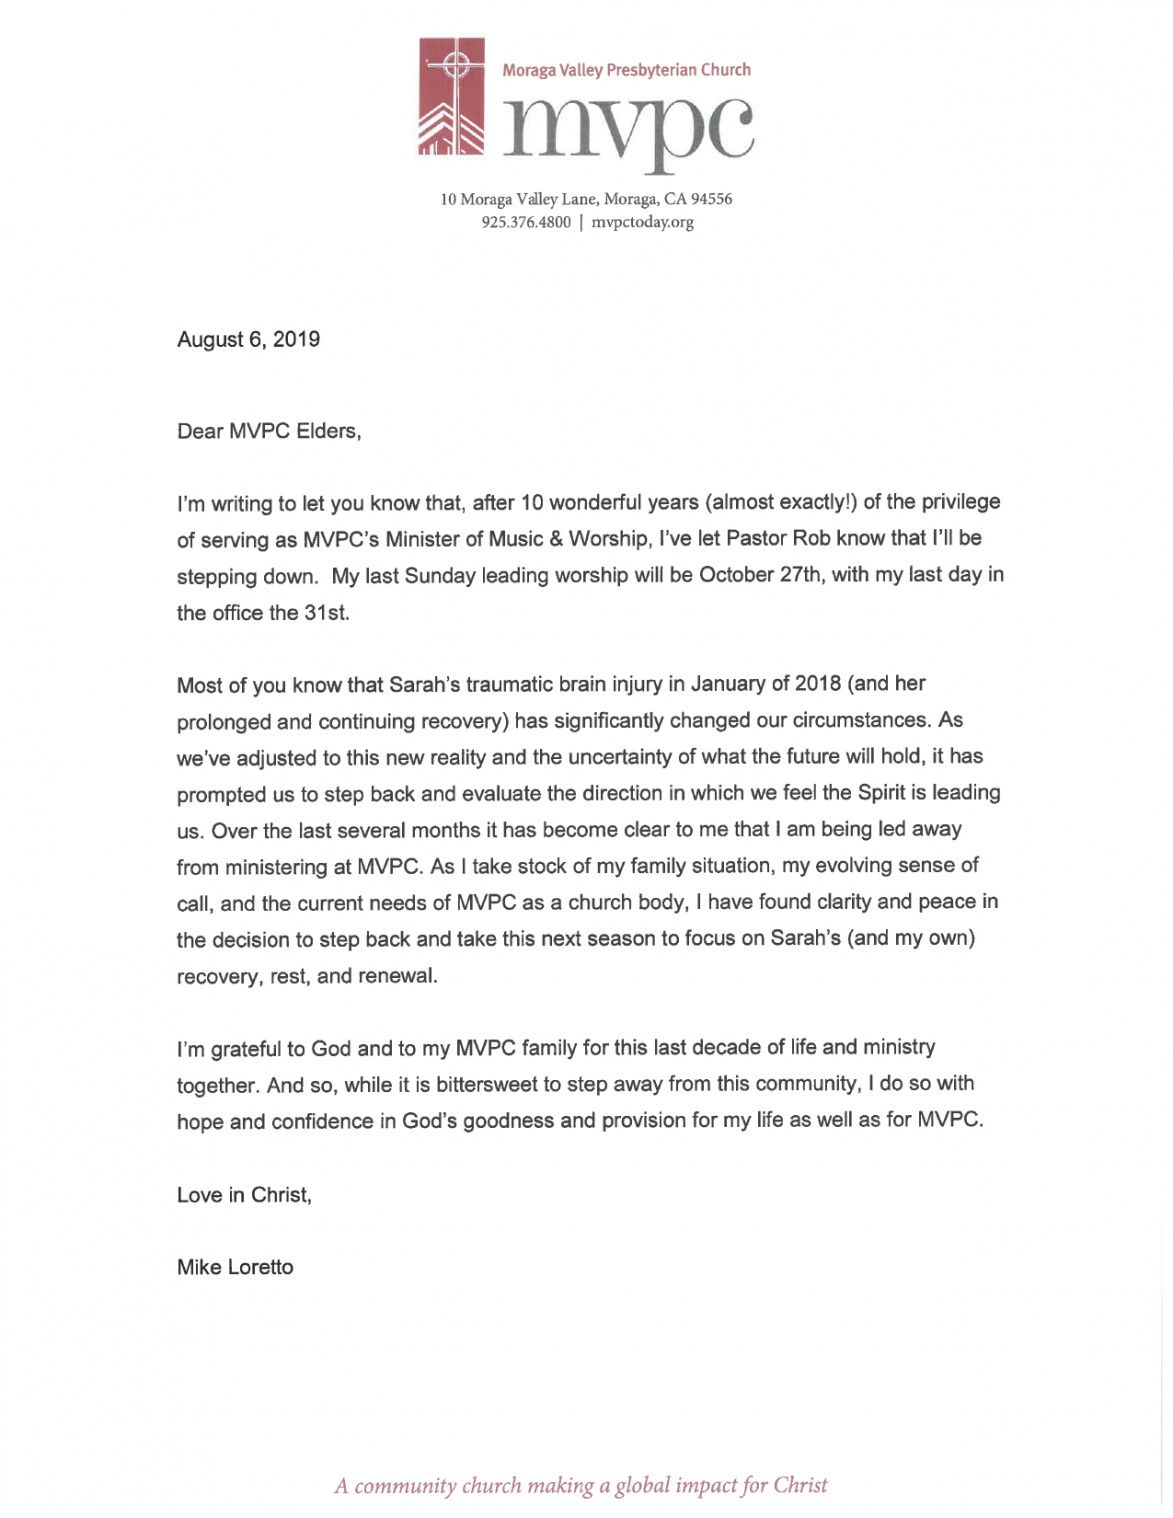 mike loretto  moraga valley presbyterian church resignation letter from church ministry